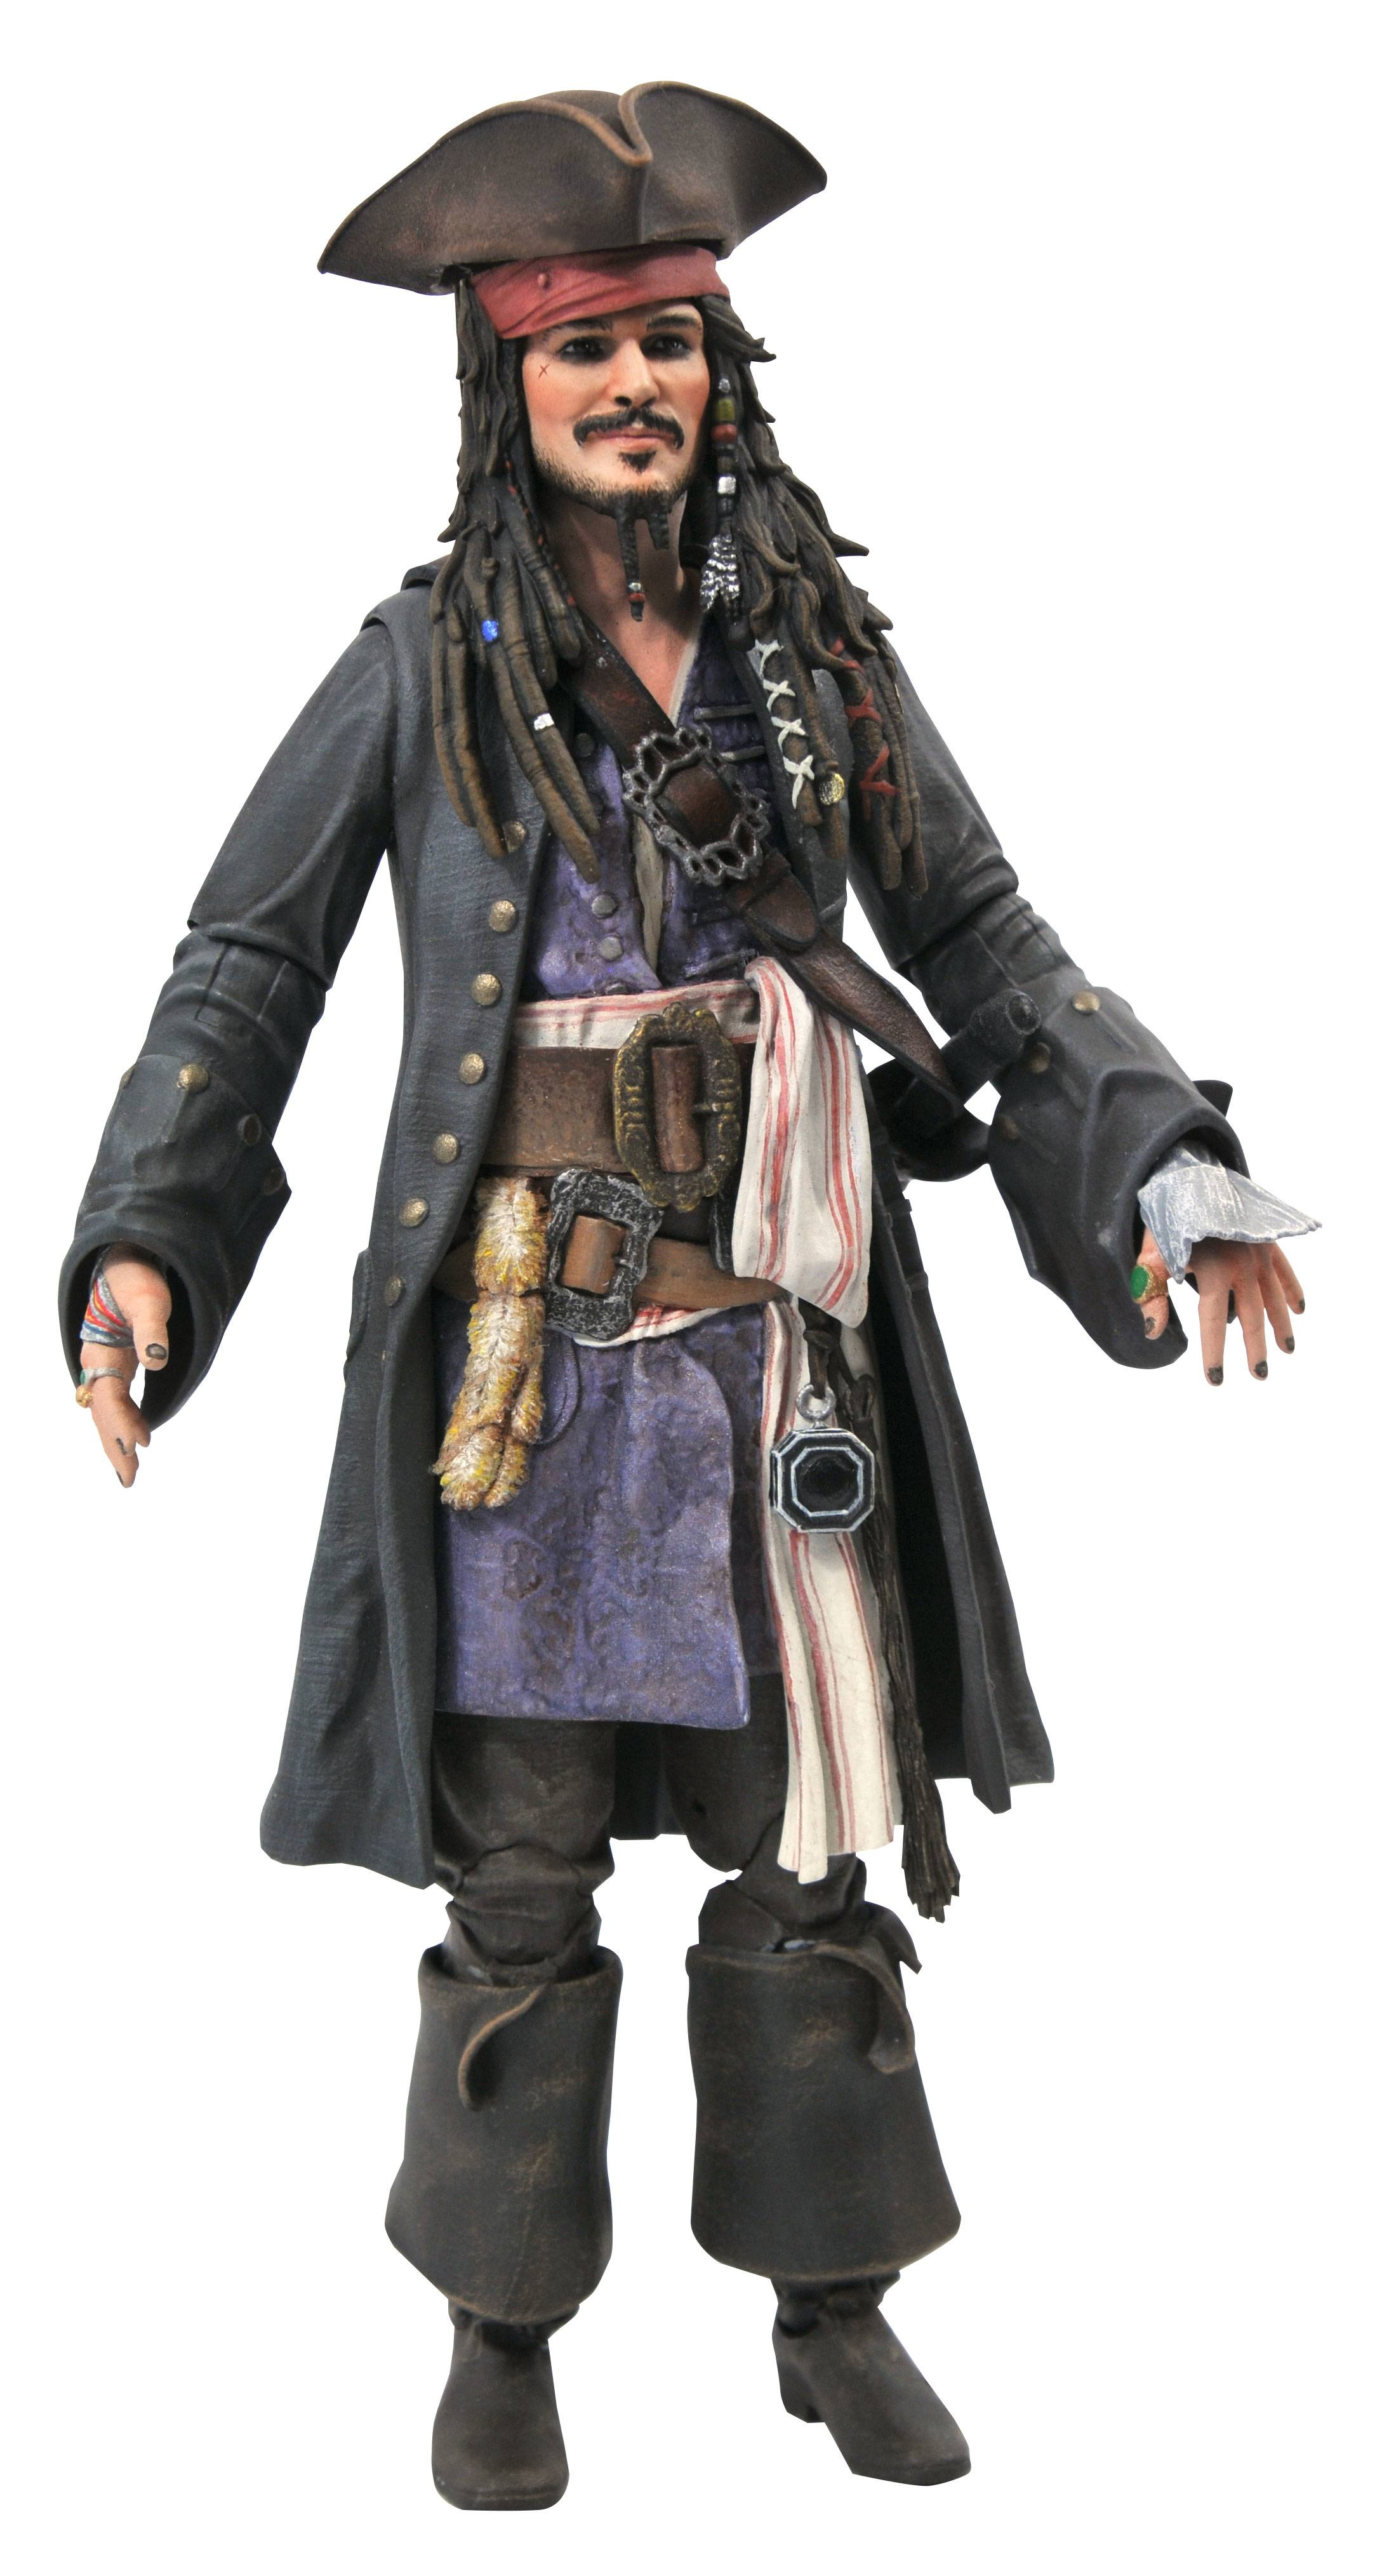 PIRATES OF THE CARIBBEAN JACK SPARROW FIGURE